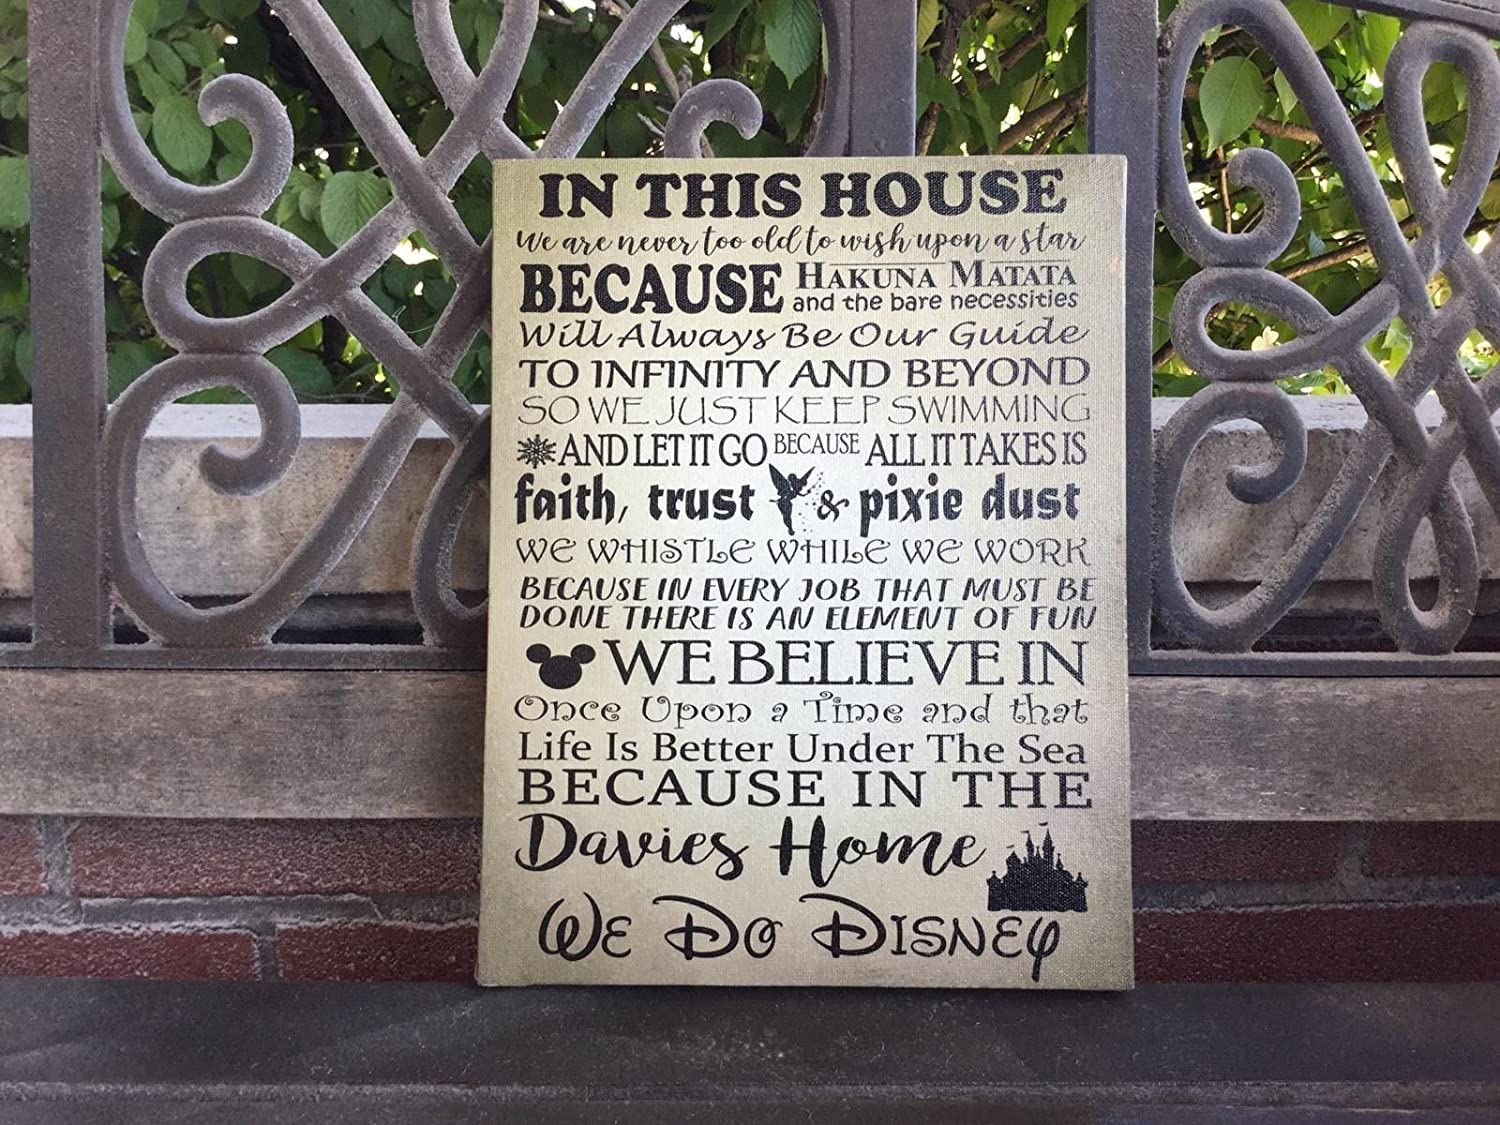 Disney Themed House Rules, Cristmas Gift, Custom Canvas, We Do Disney, Personalize With Family Name